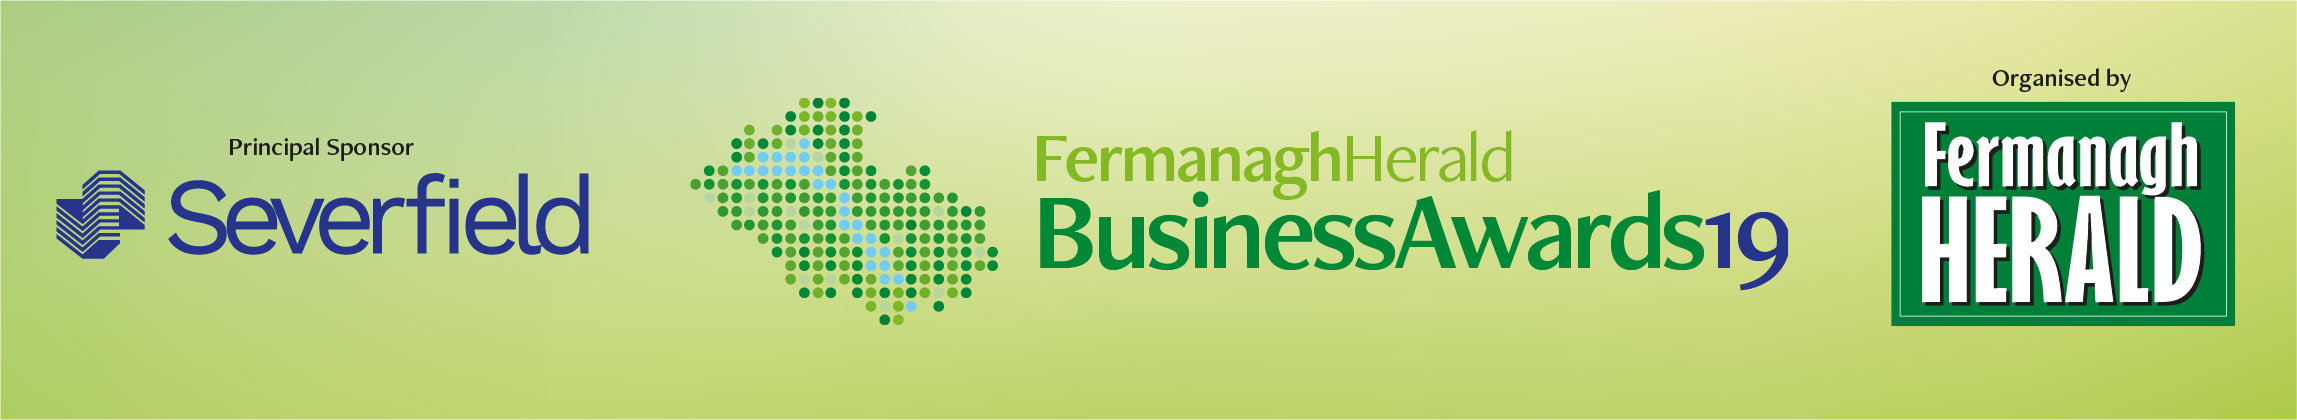 Fermanagh Herald Business Awards Header